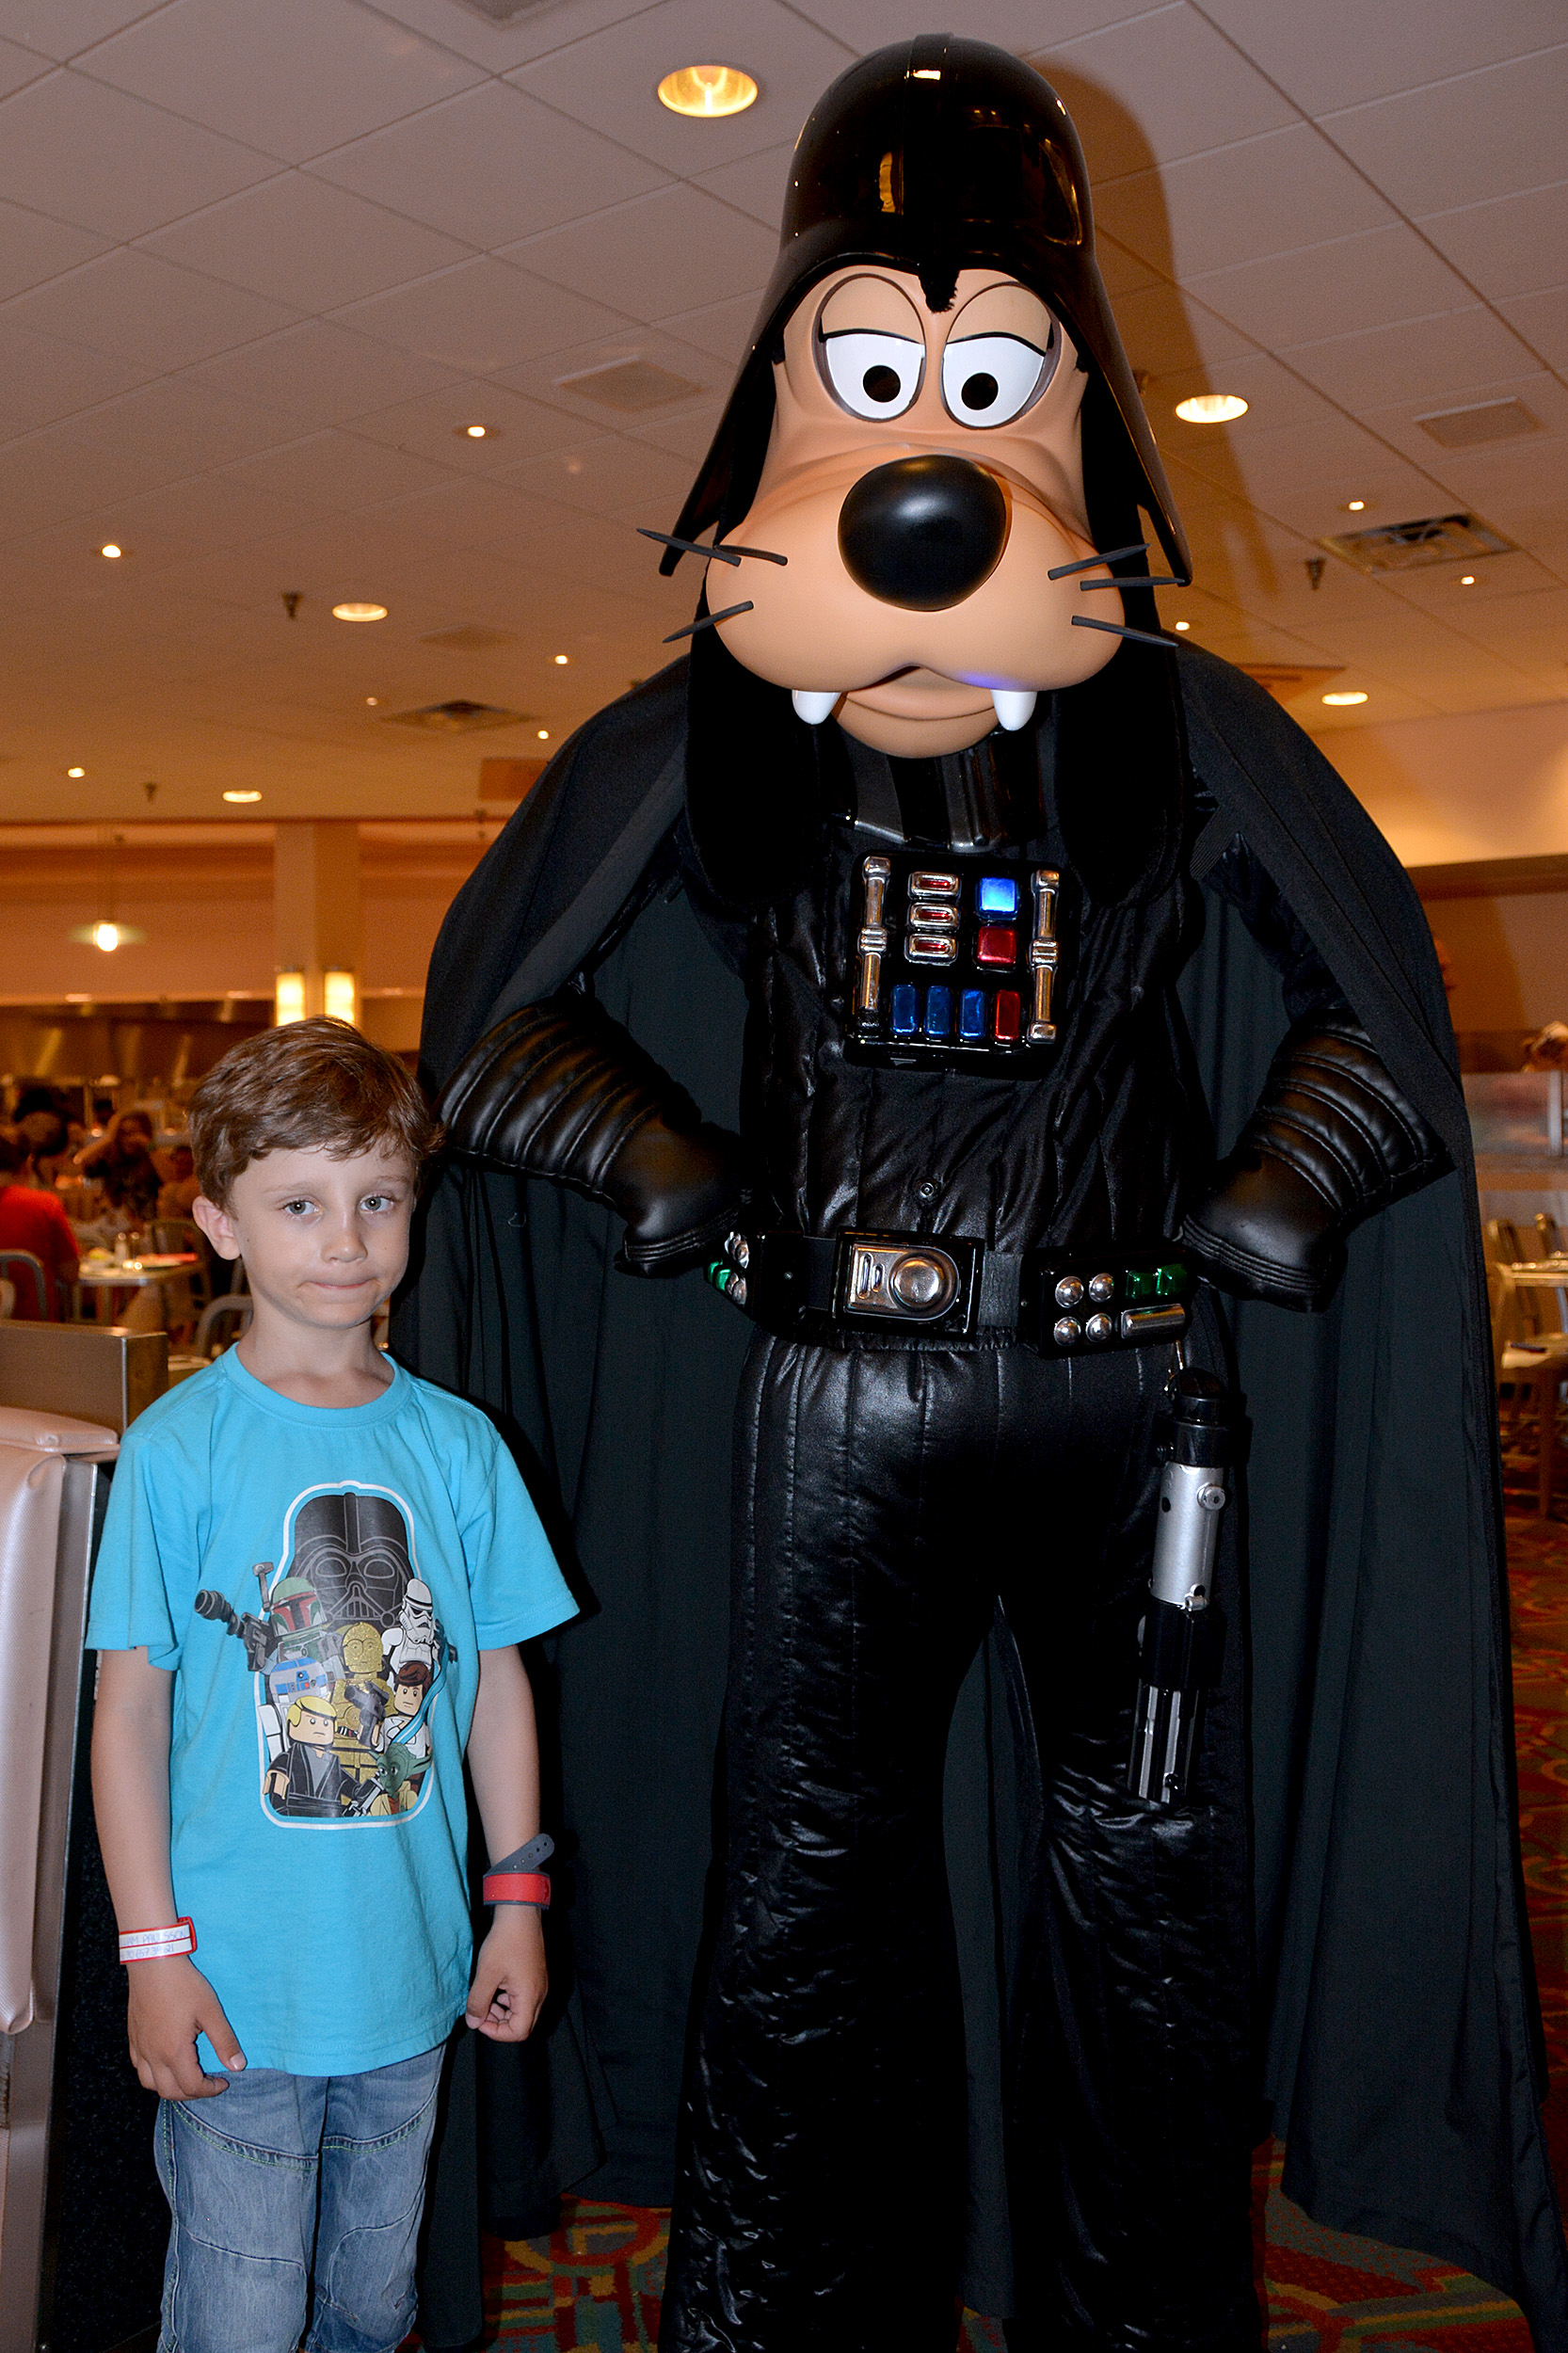 Goofy Darth Vader Star Wars weekends